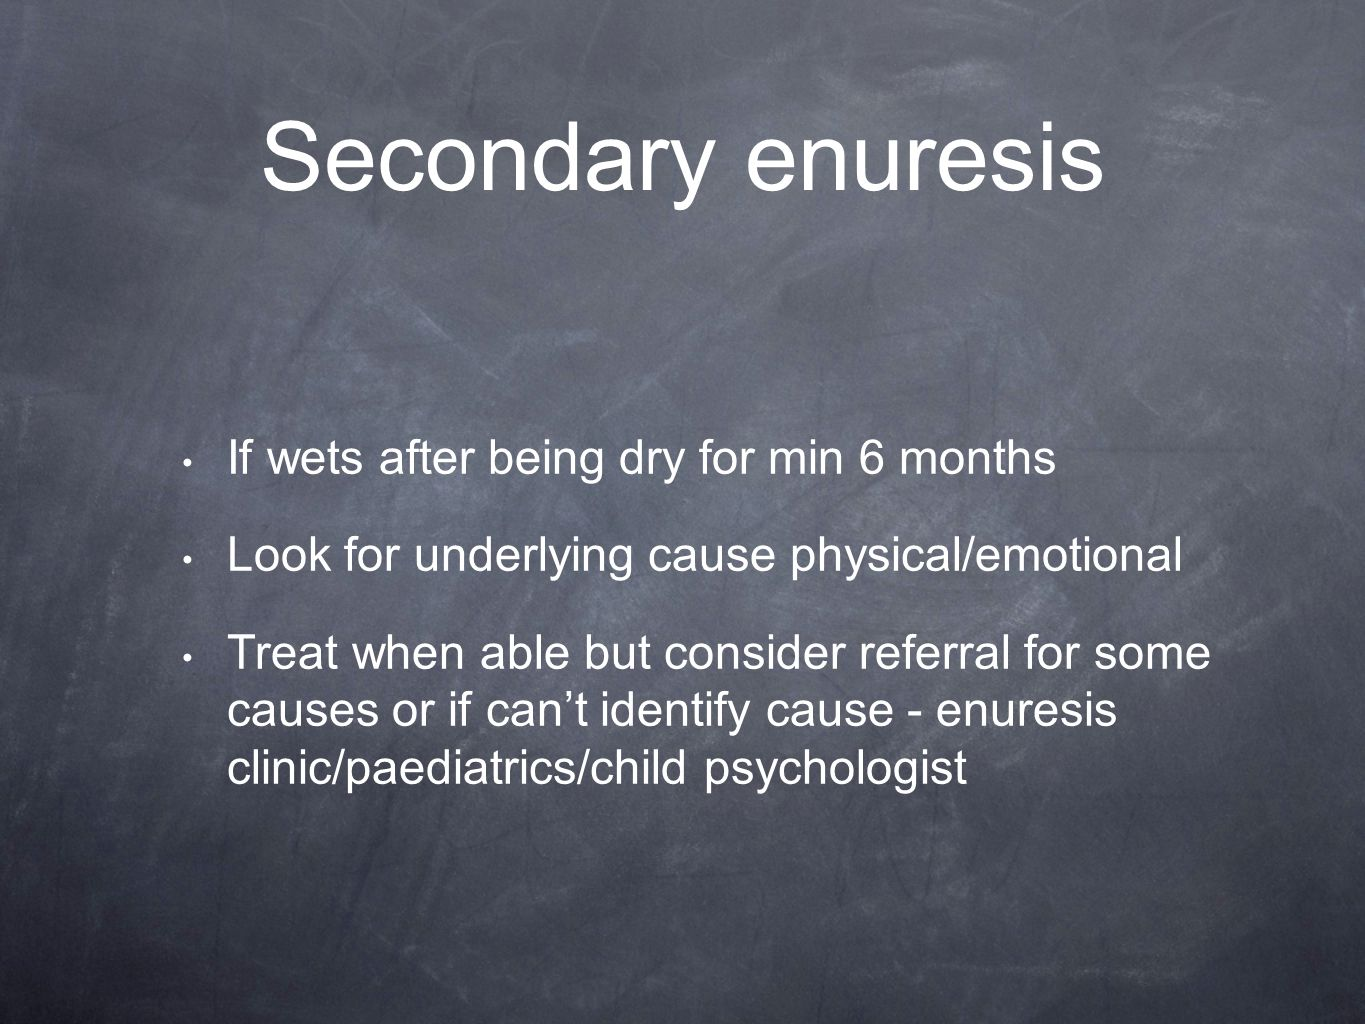 Secondary enuresis If wets after being dry for min 6 months Look for underlying cause physical/emotional Treat when able but consider referral for some causes or if can't identify cause - enuresis clinic/paediatrics/child psychologist